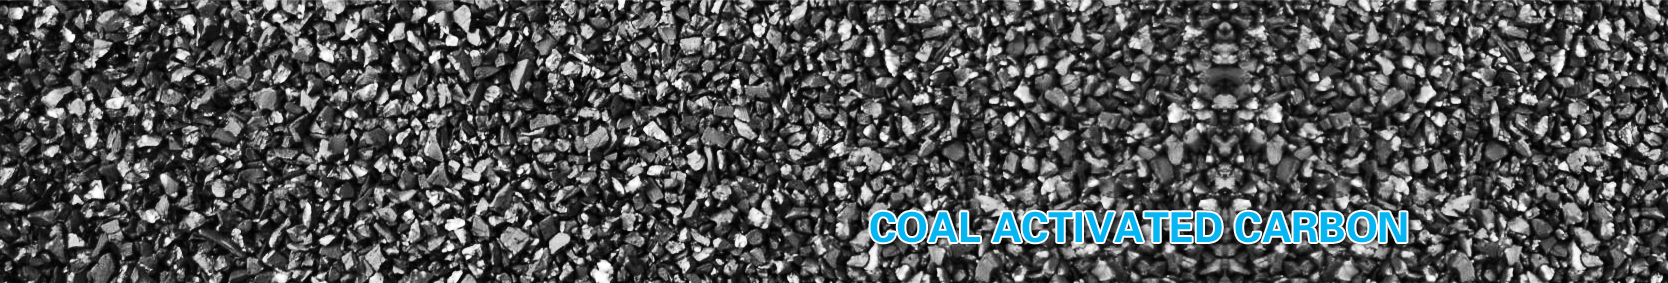 Coal Activated Carbon for Pressure-swing Adsorption